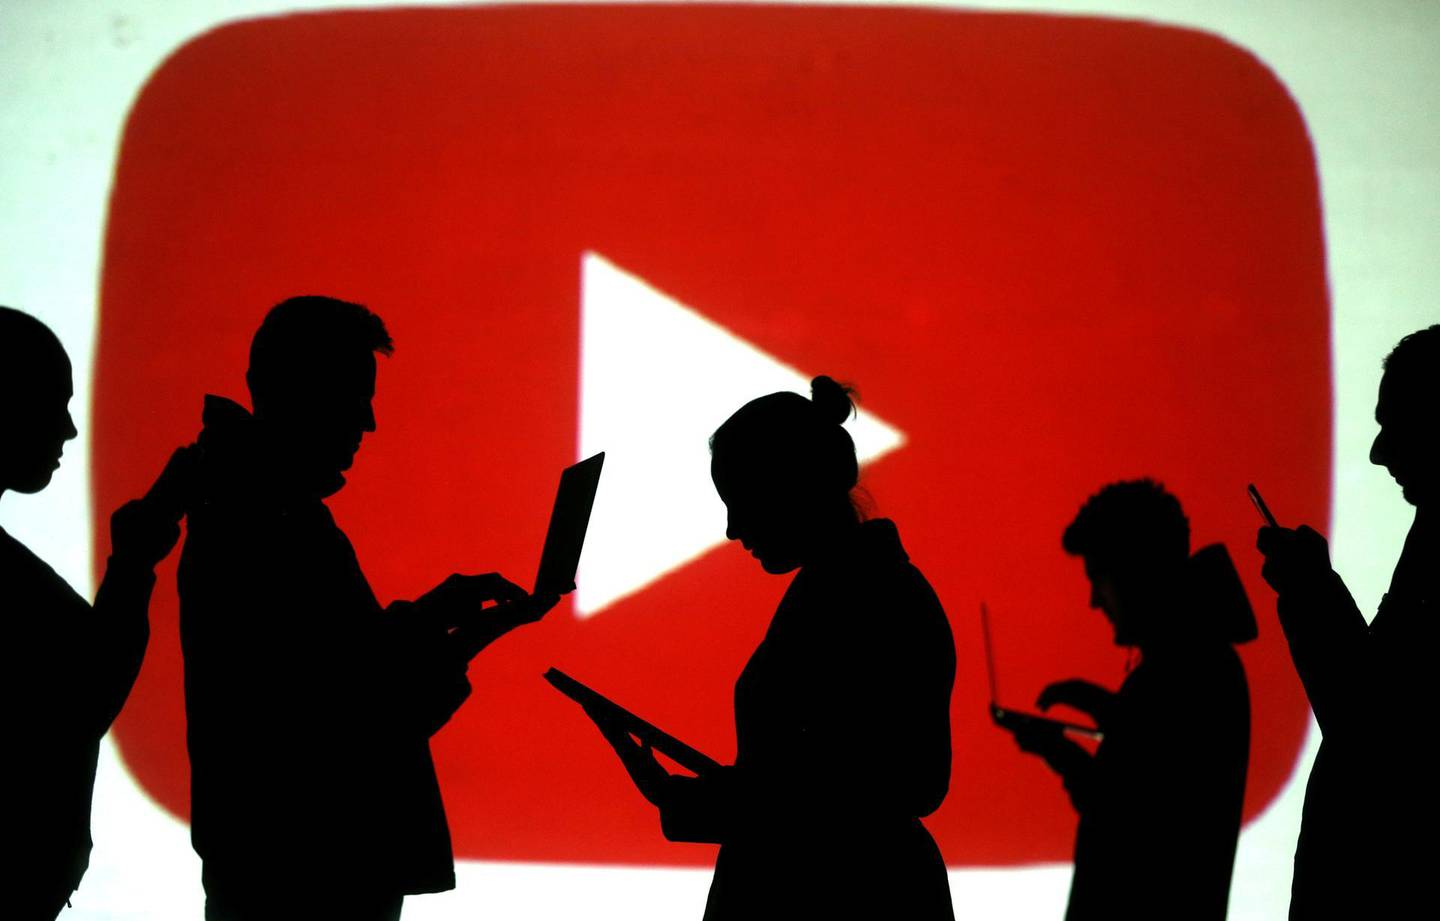 FILE PHOTO: Silhouettes of laptop and mobile device users are seen next to a screen projection of the YouTube logo in this picture illustration taken March 28, 2018.  REUTERS/Dado Ruvic/Illustration/File Photo